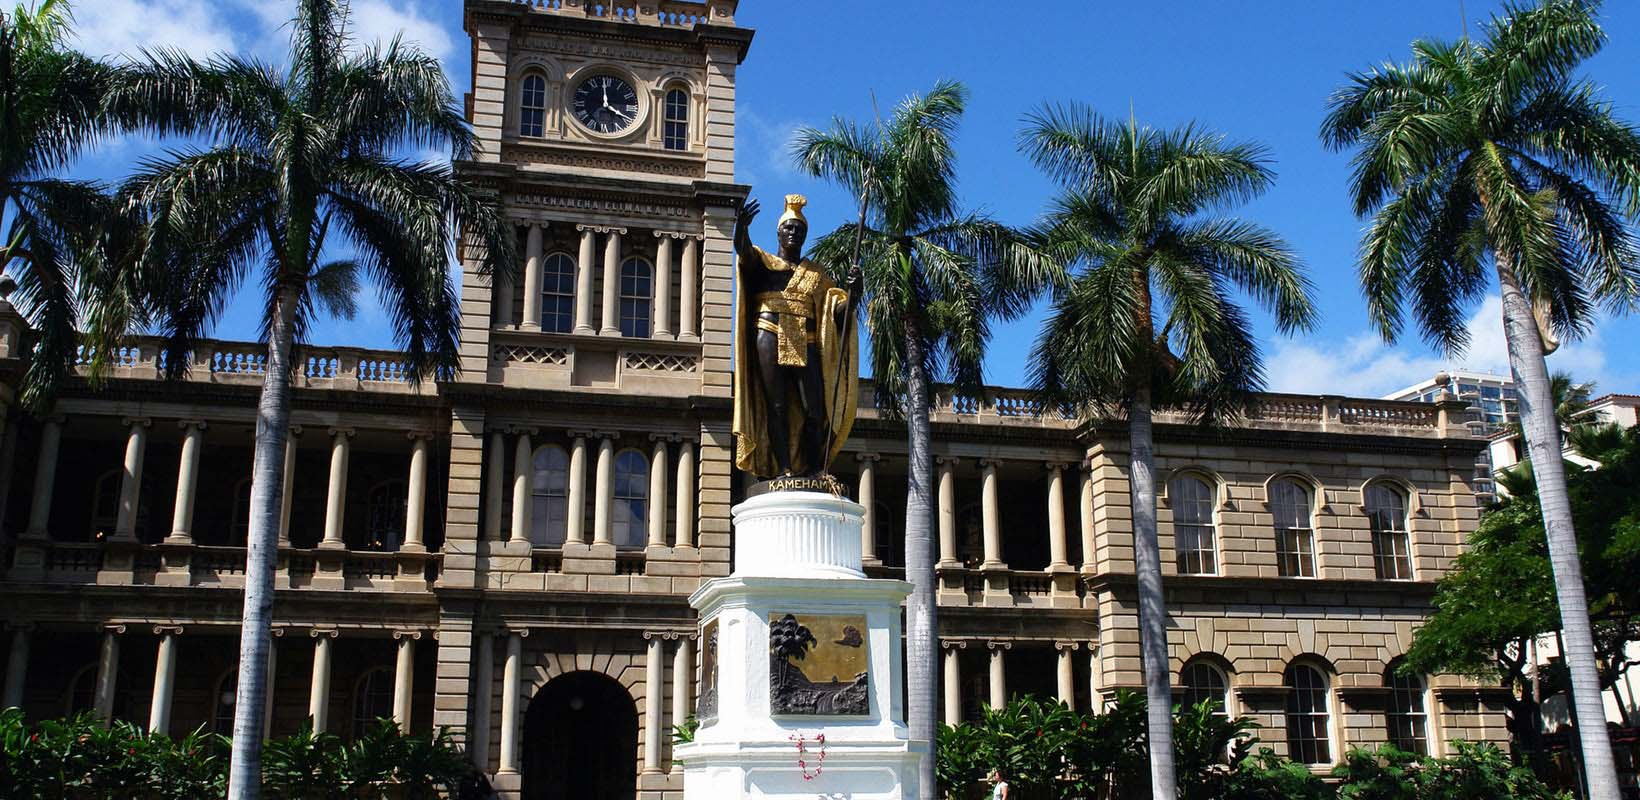 Historical Hawaii and Chinatown segway experience